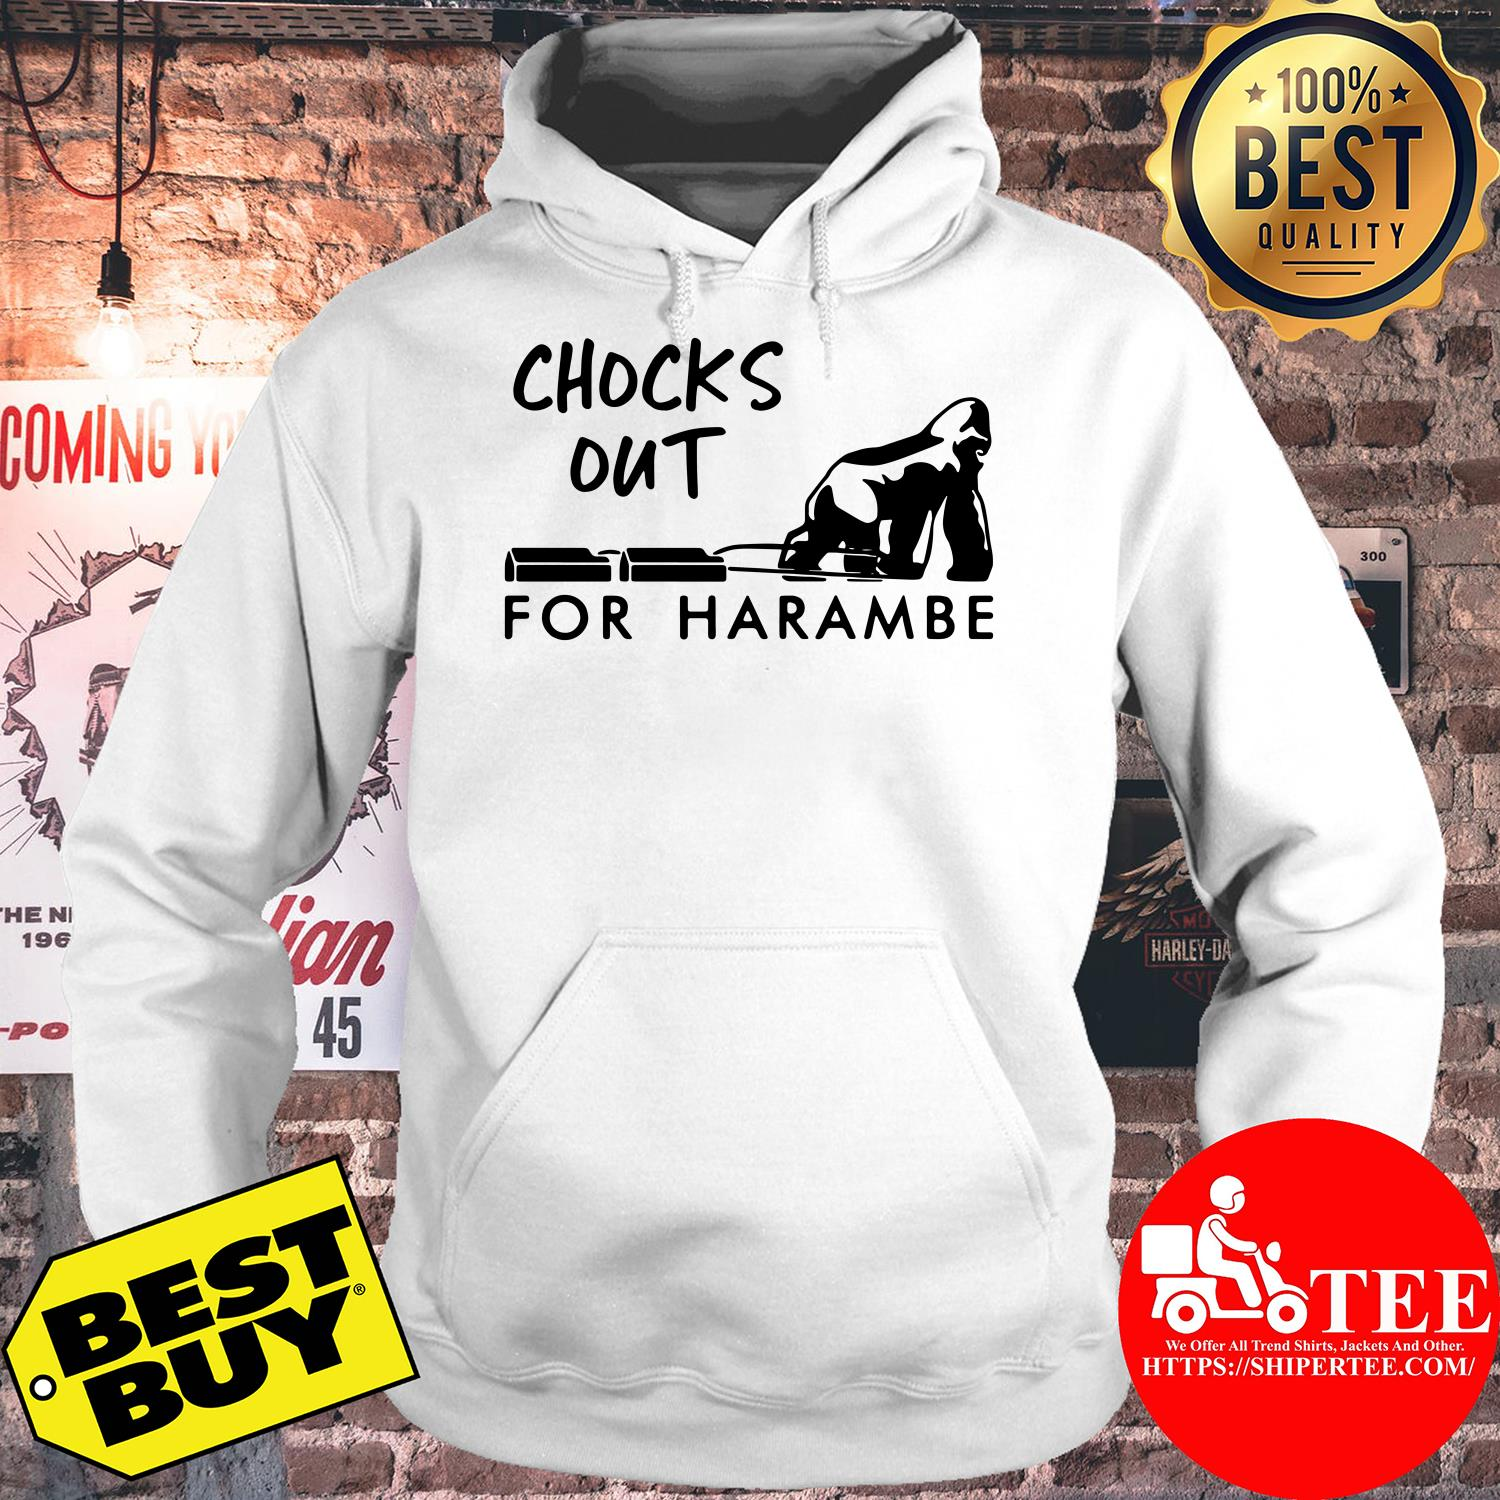 Chocks out for harambe gorilla hoodie